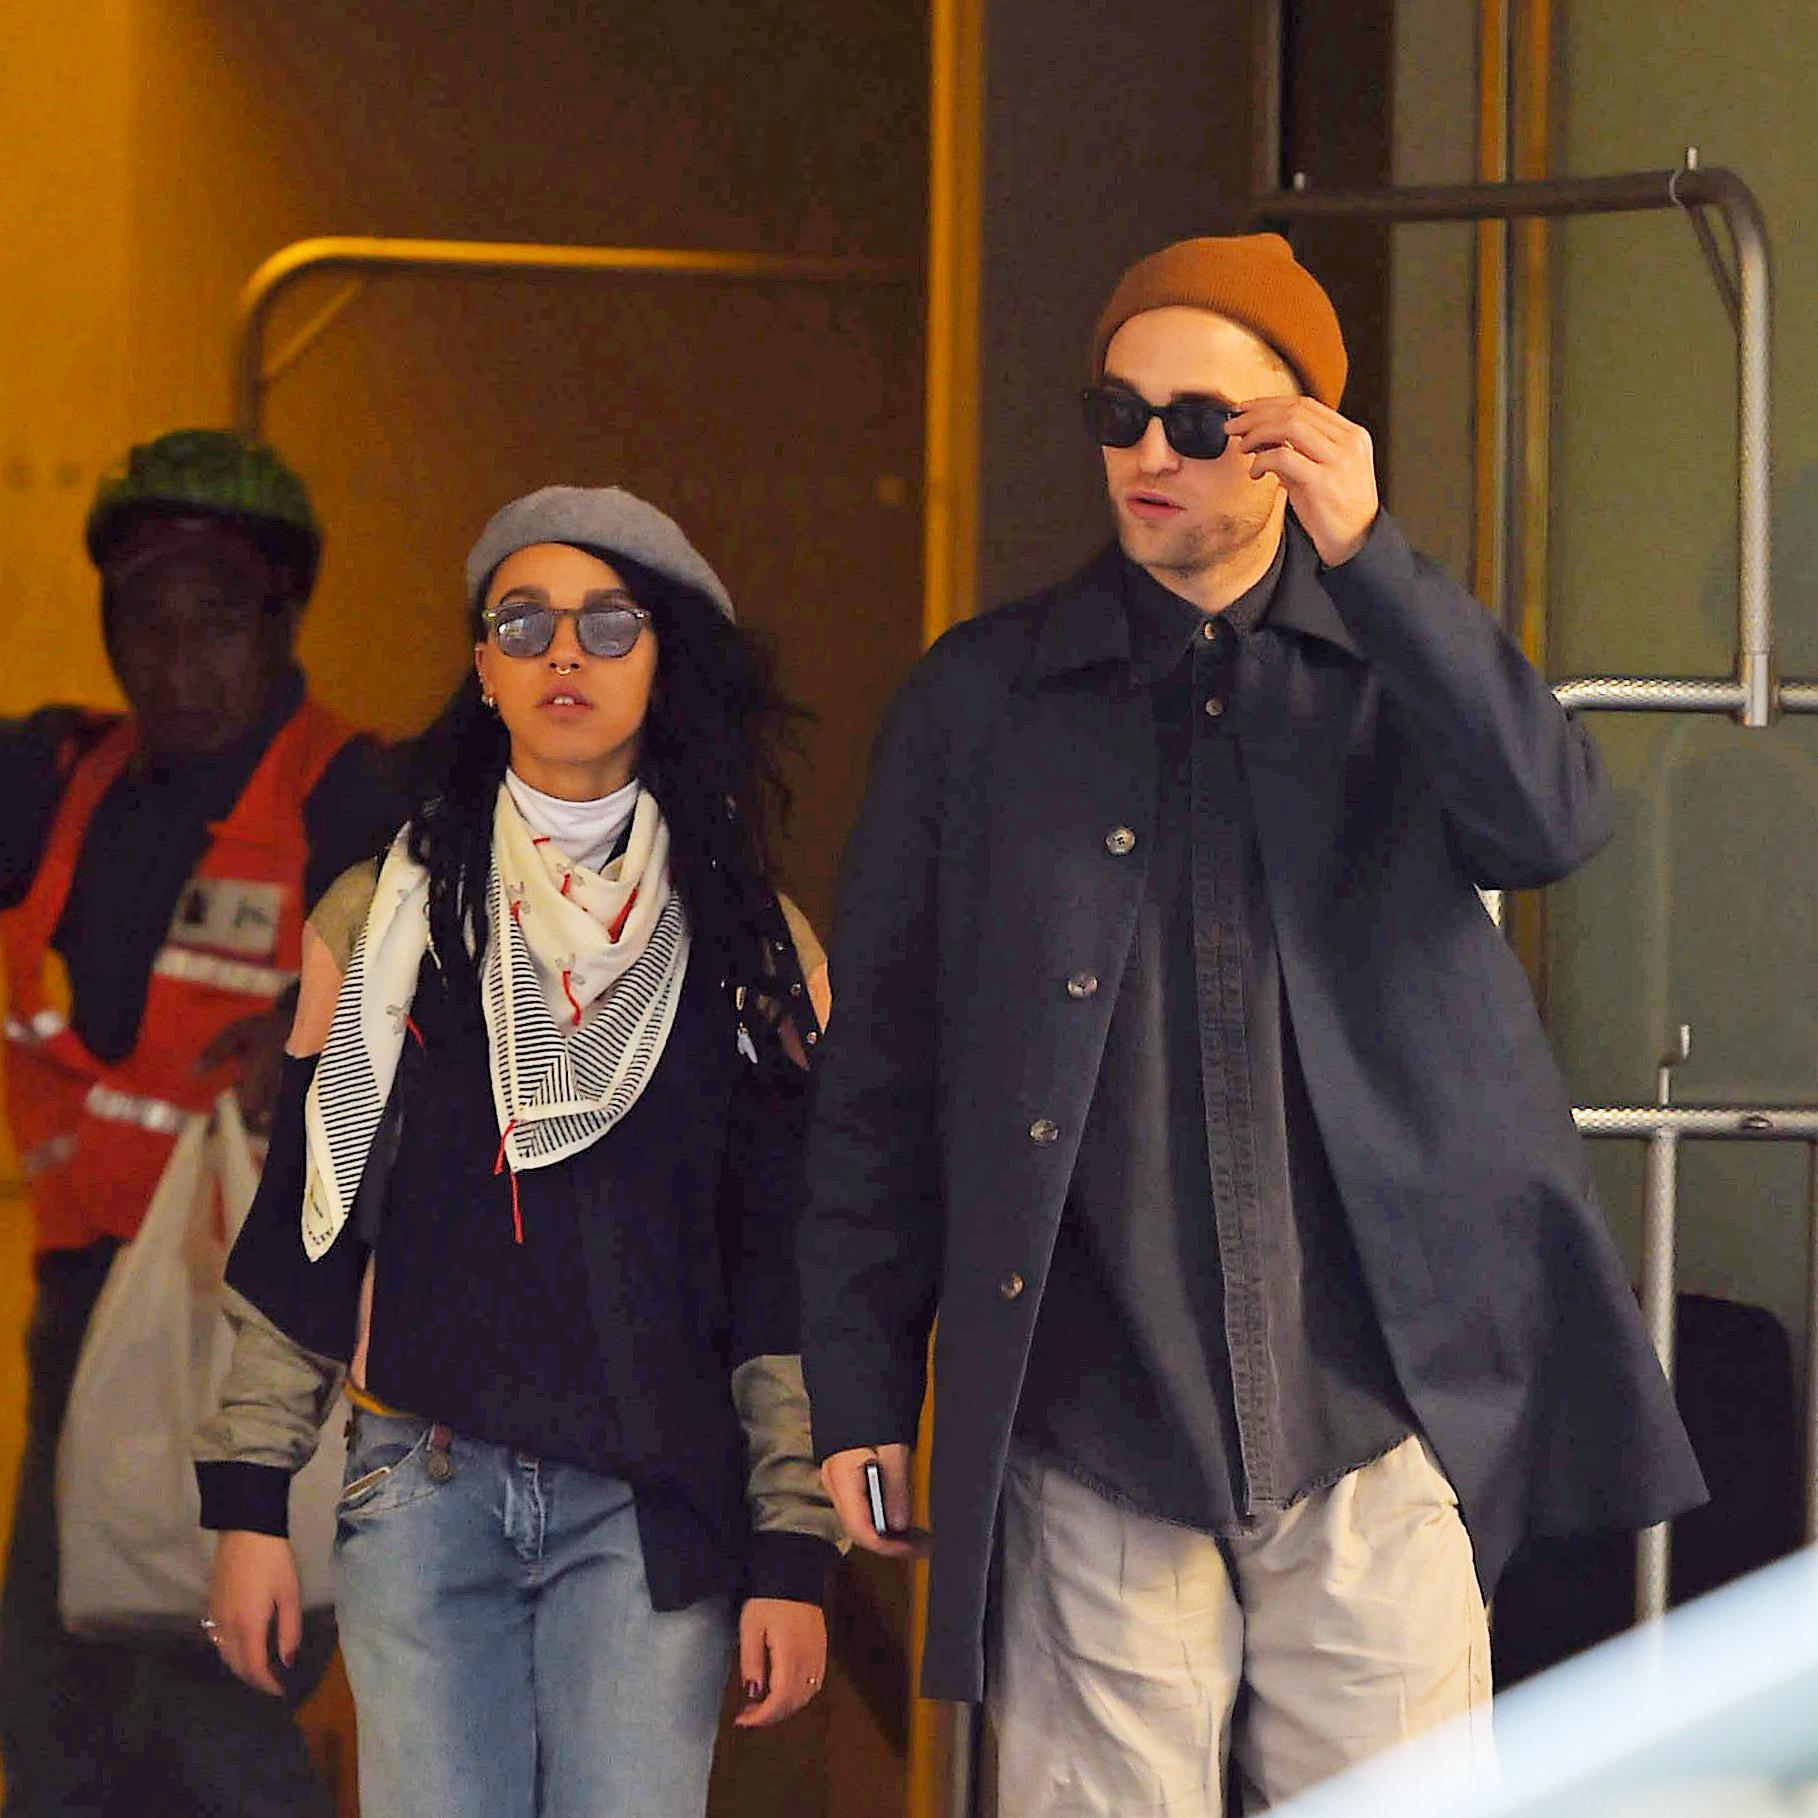 Robert Pattinson and his girlfriend FKA twigs get a taxi cab in Midtown Manhattan